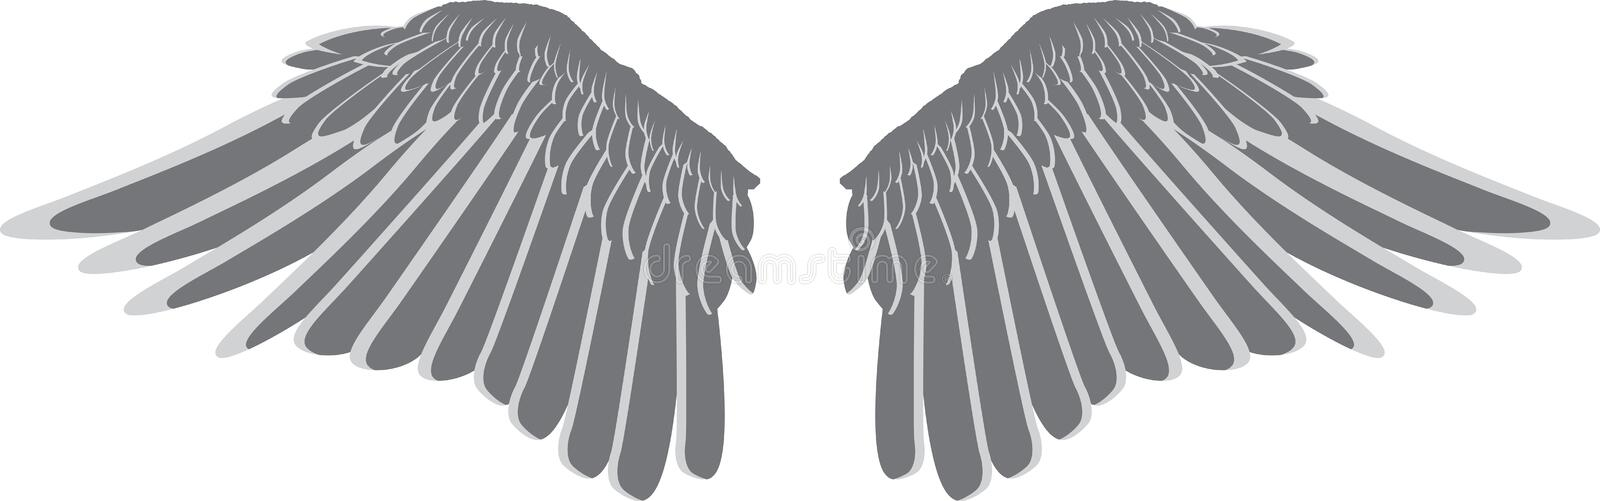 Bird wings stock illustration